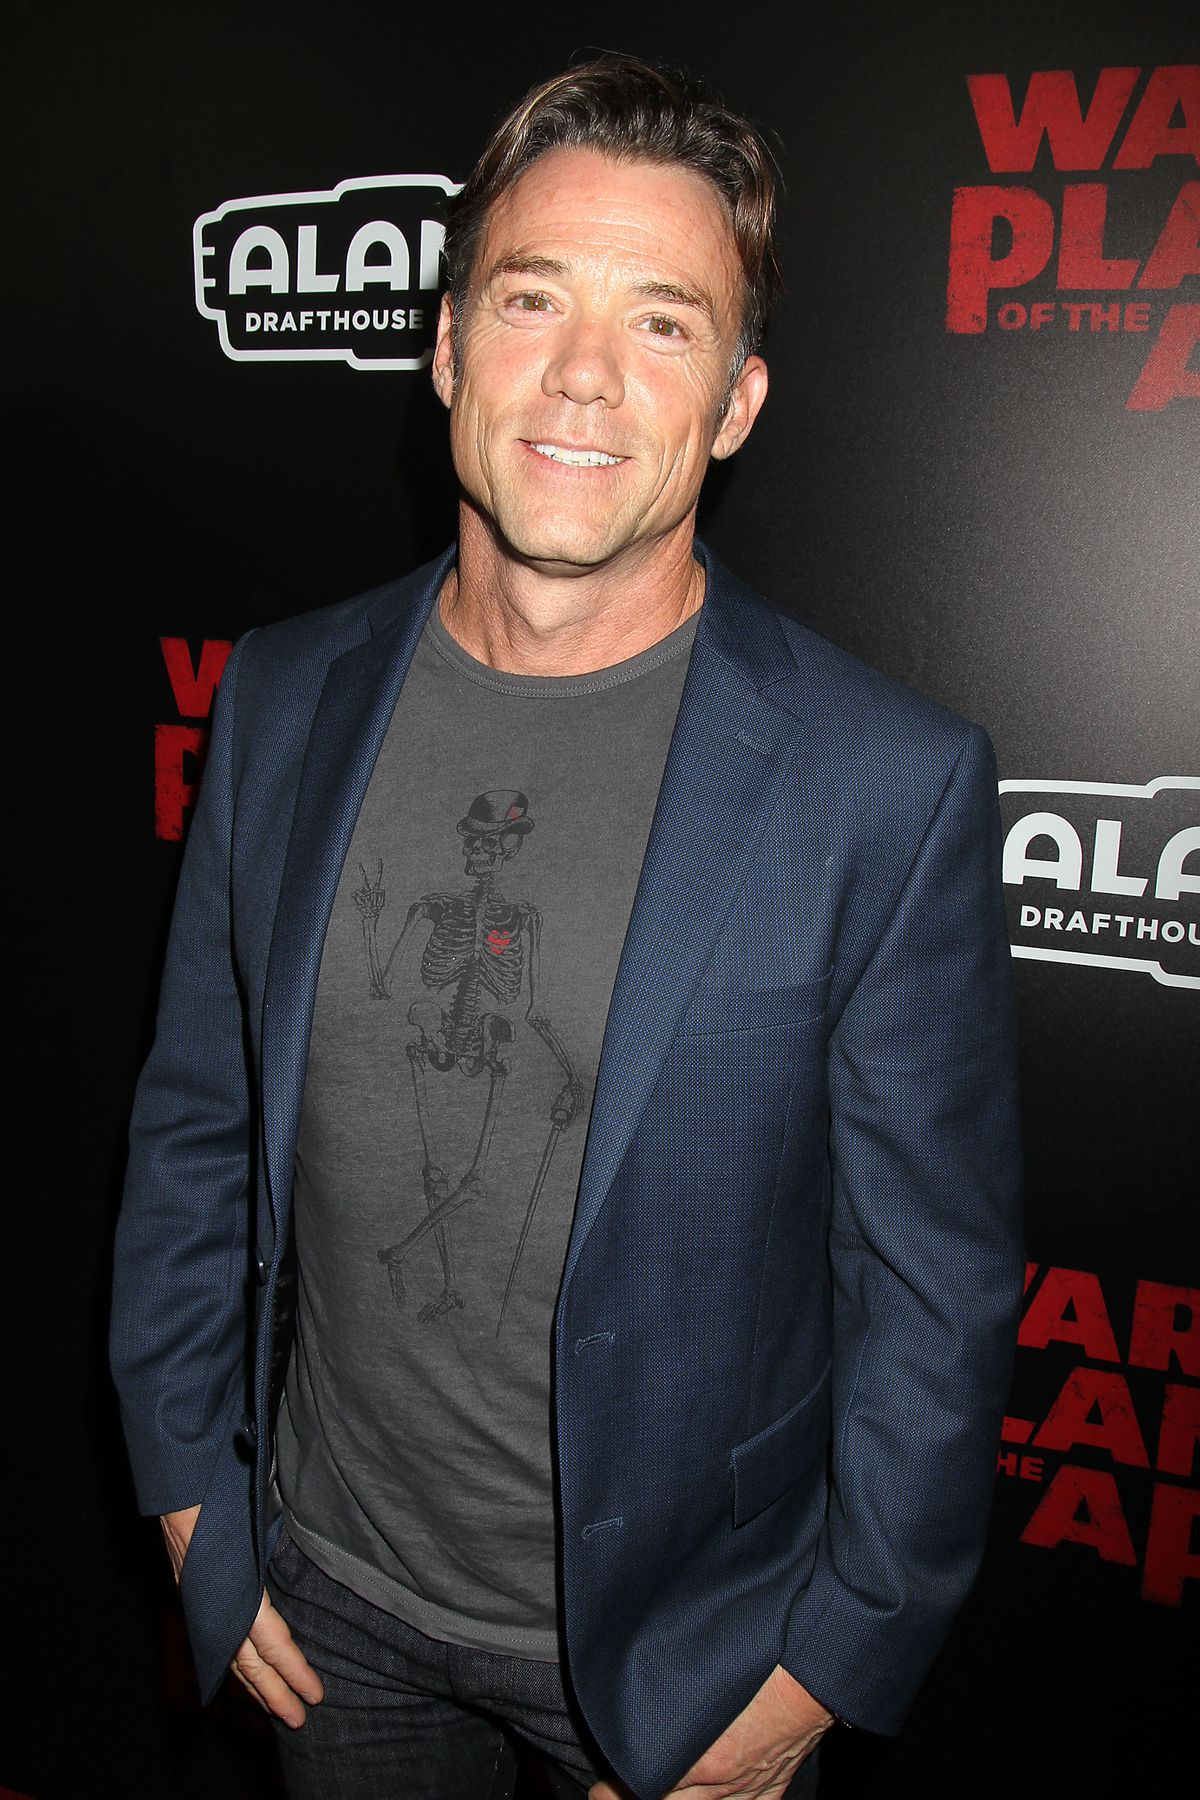 Planet of the Apes movement coach Terry Notary on the secret